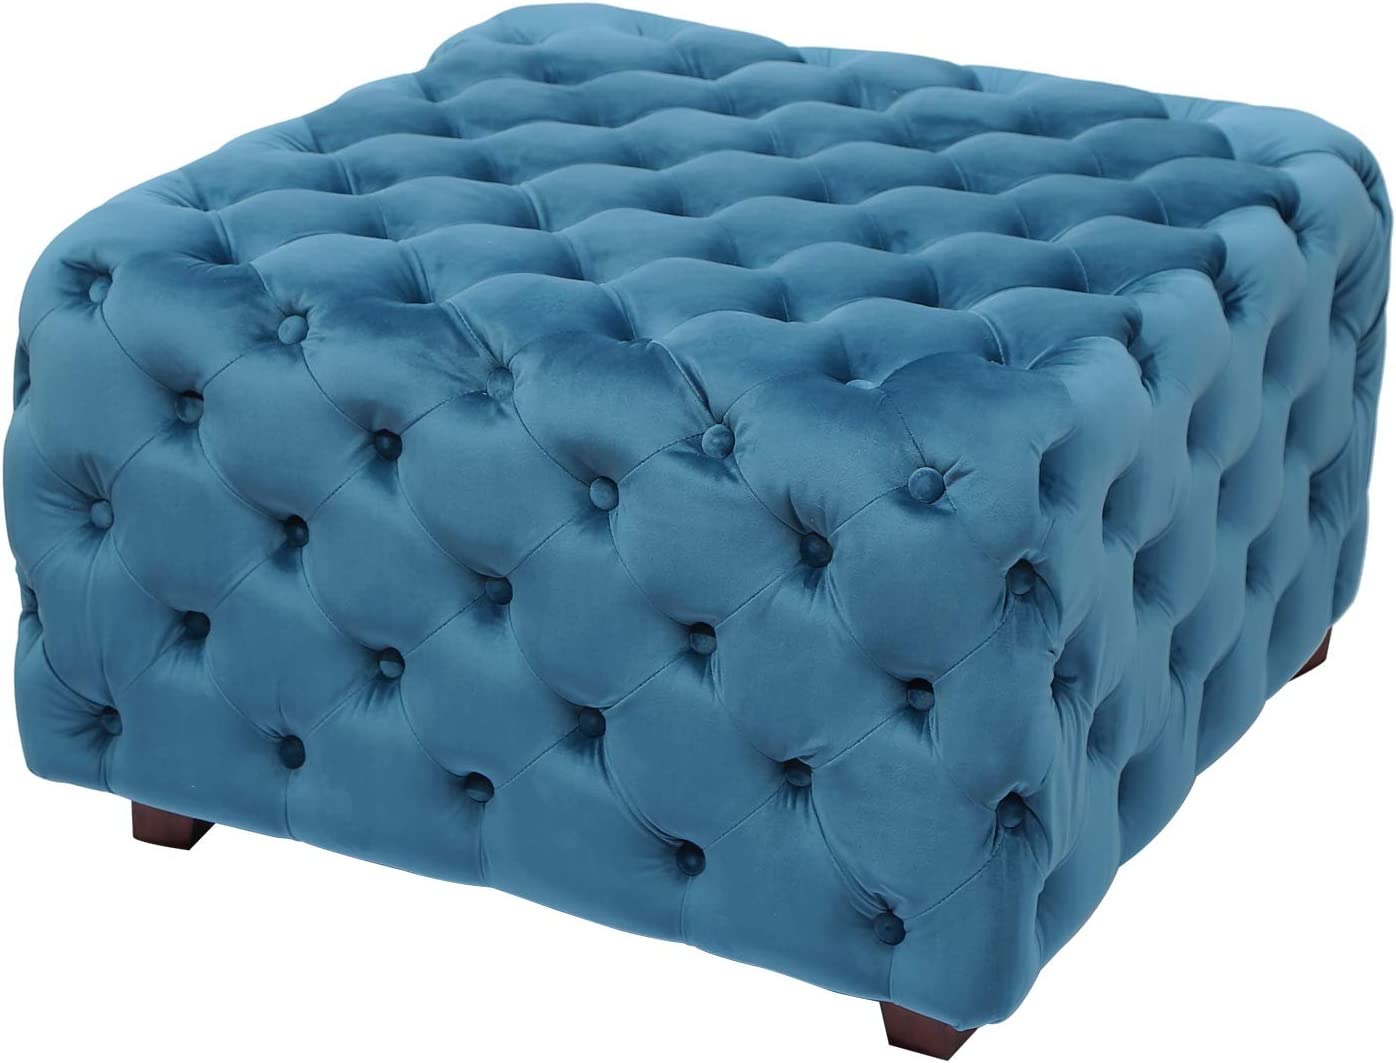 Velvet Ottoman Bench Cube Foot Rest Stool Square Coffee Table 28 9 W Teal Kitchen Dining